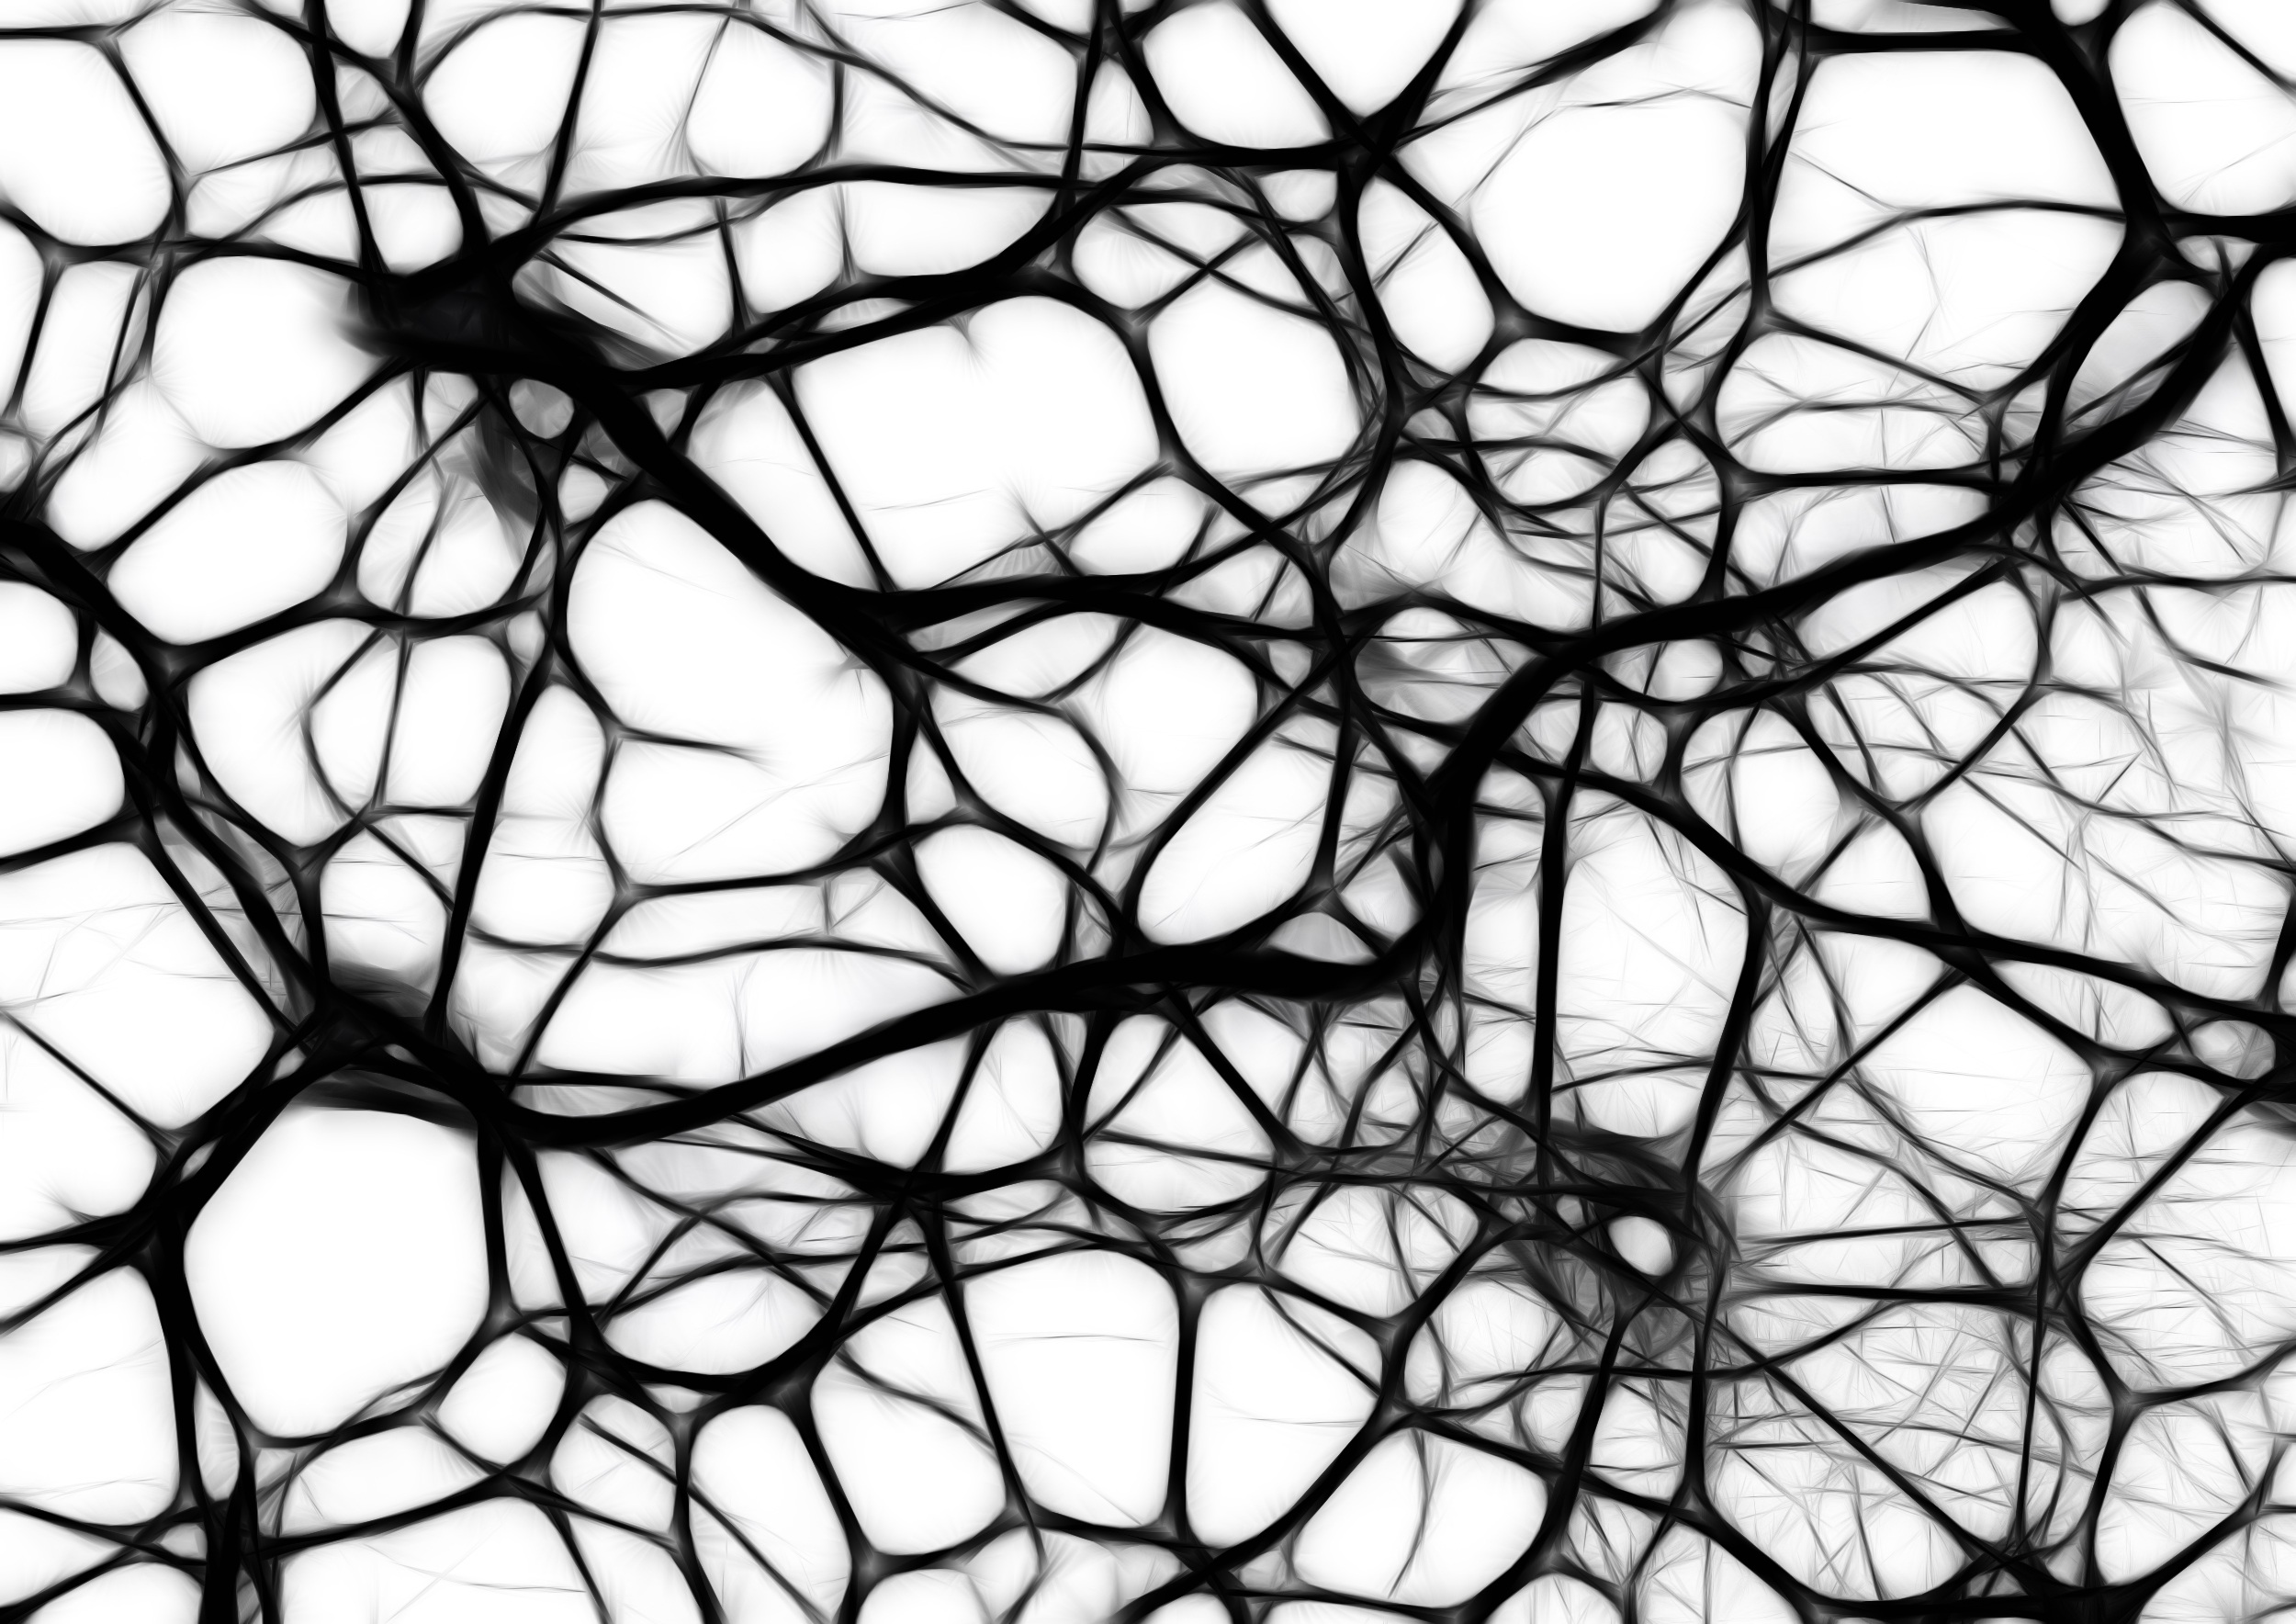 neurons - your brain on anxiety